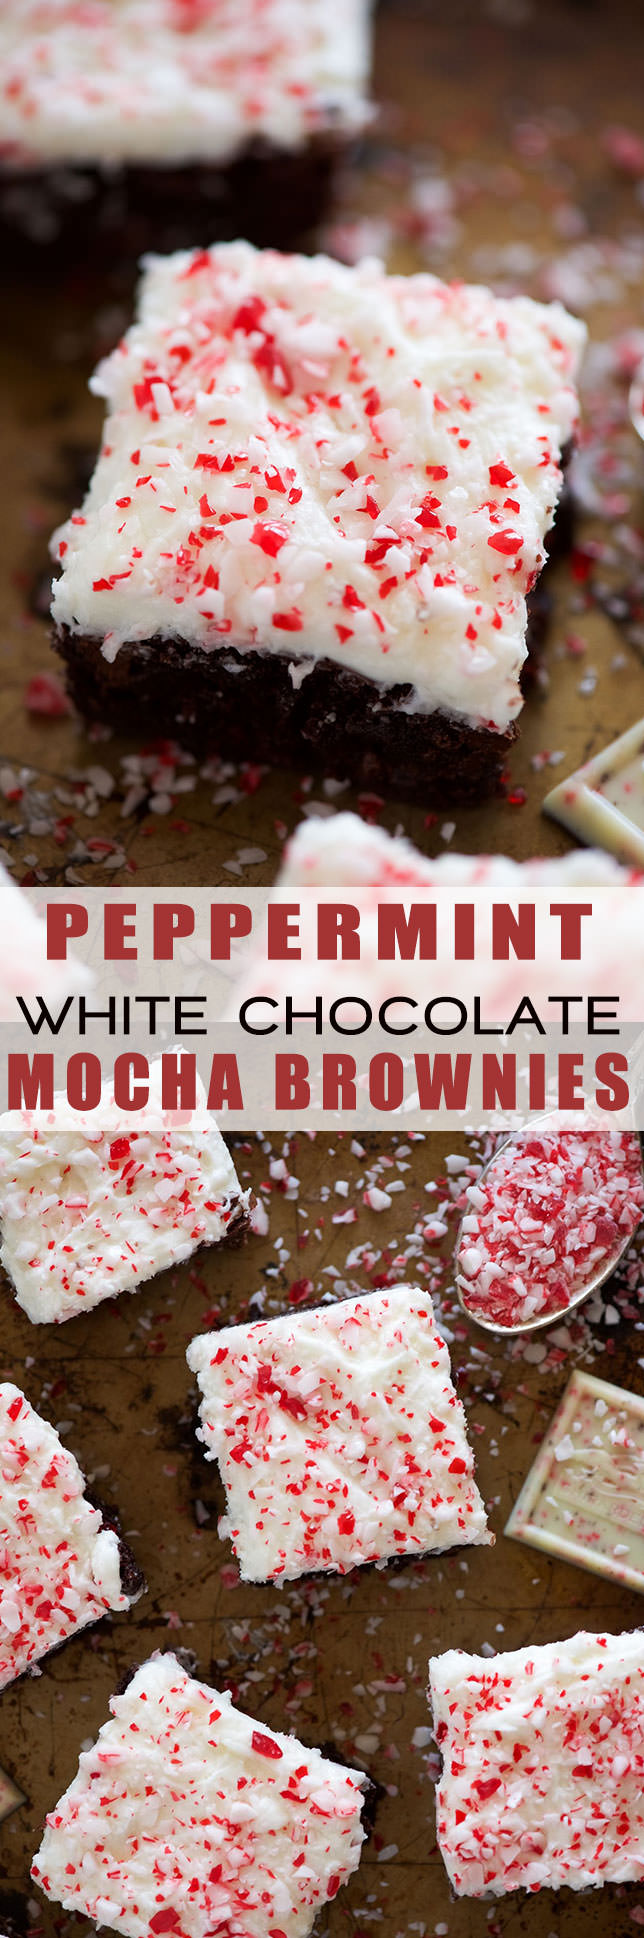 Peppermint White Mocha Brownies have a fudgy brownie base, filled with white chocolate and coffee! Then finished with a buttery peppermint frosting. A holiday dessert table must!